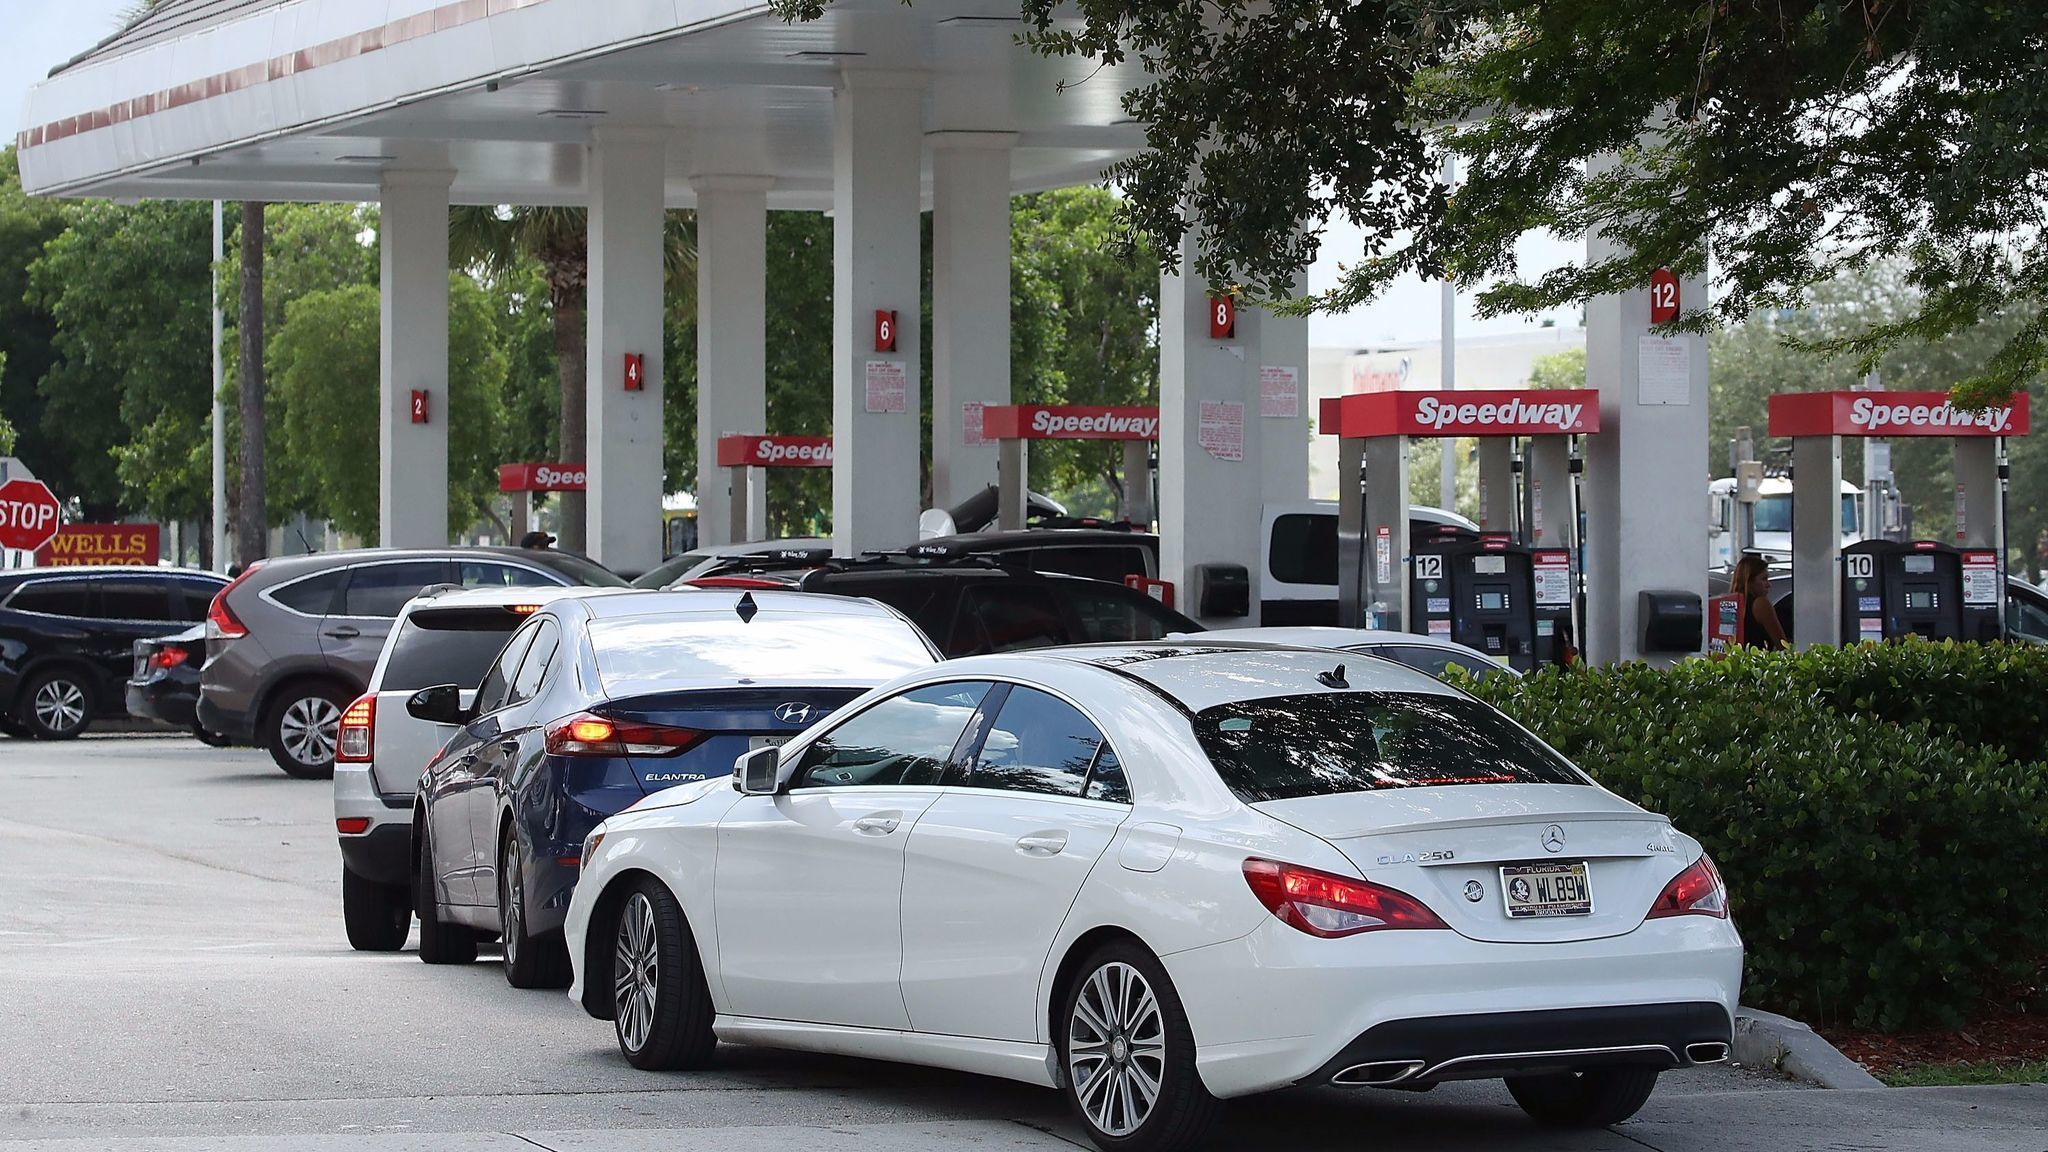 Anti-price gouging laws don't benefit consumers | Opinion ...